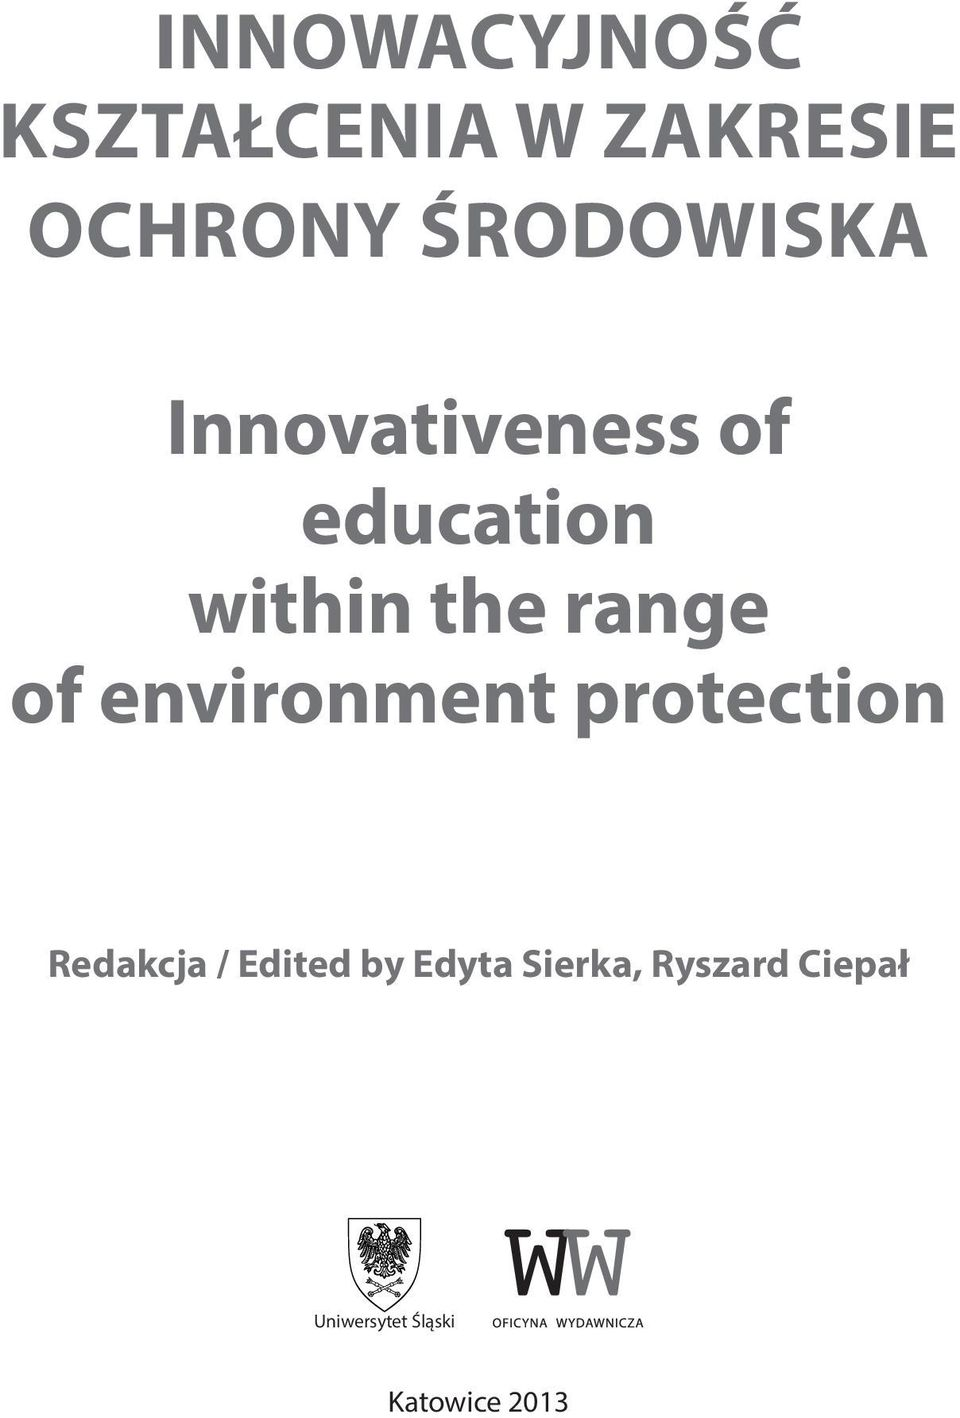 range of environment protection Redakcja / Edited by